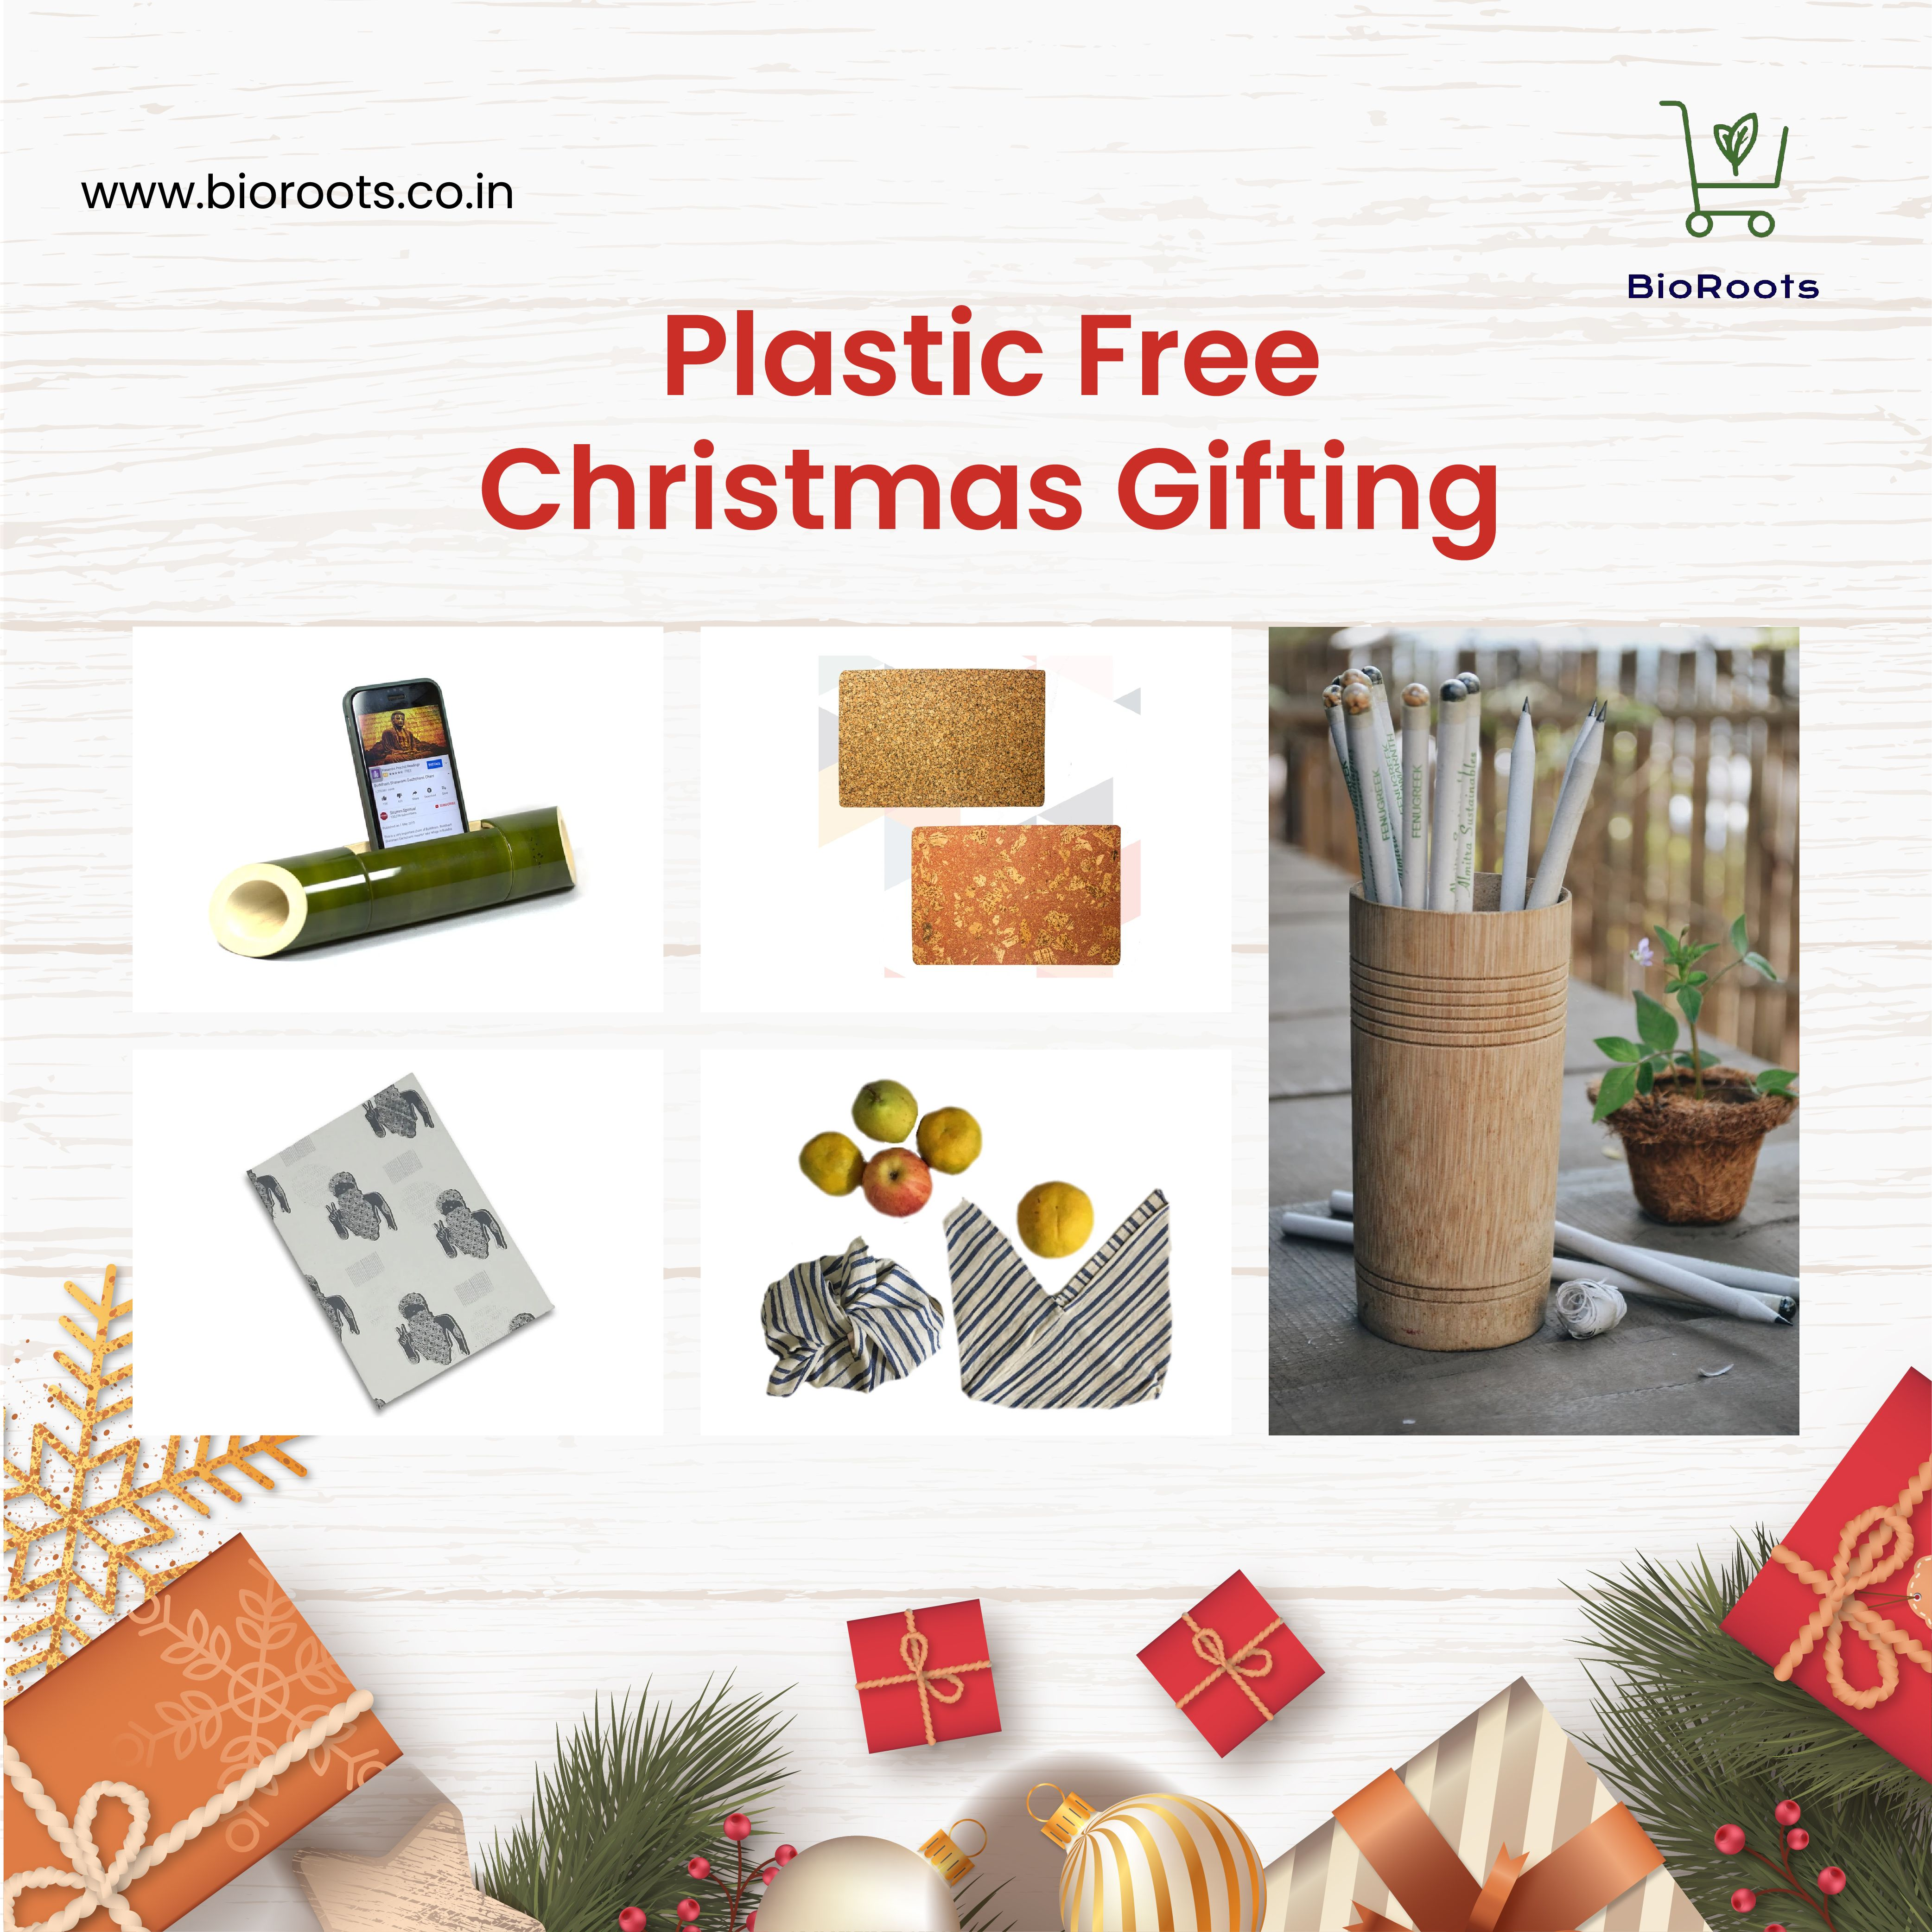 Plastic Free Christmas Gifting Free Christmas Christmas Gifts Sustainable Gifts